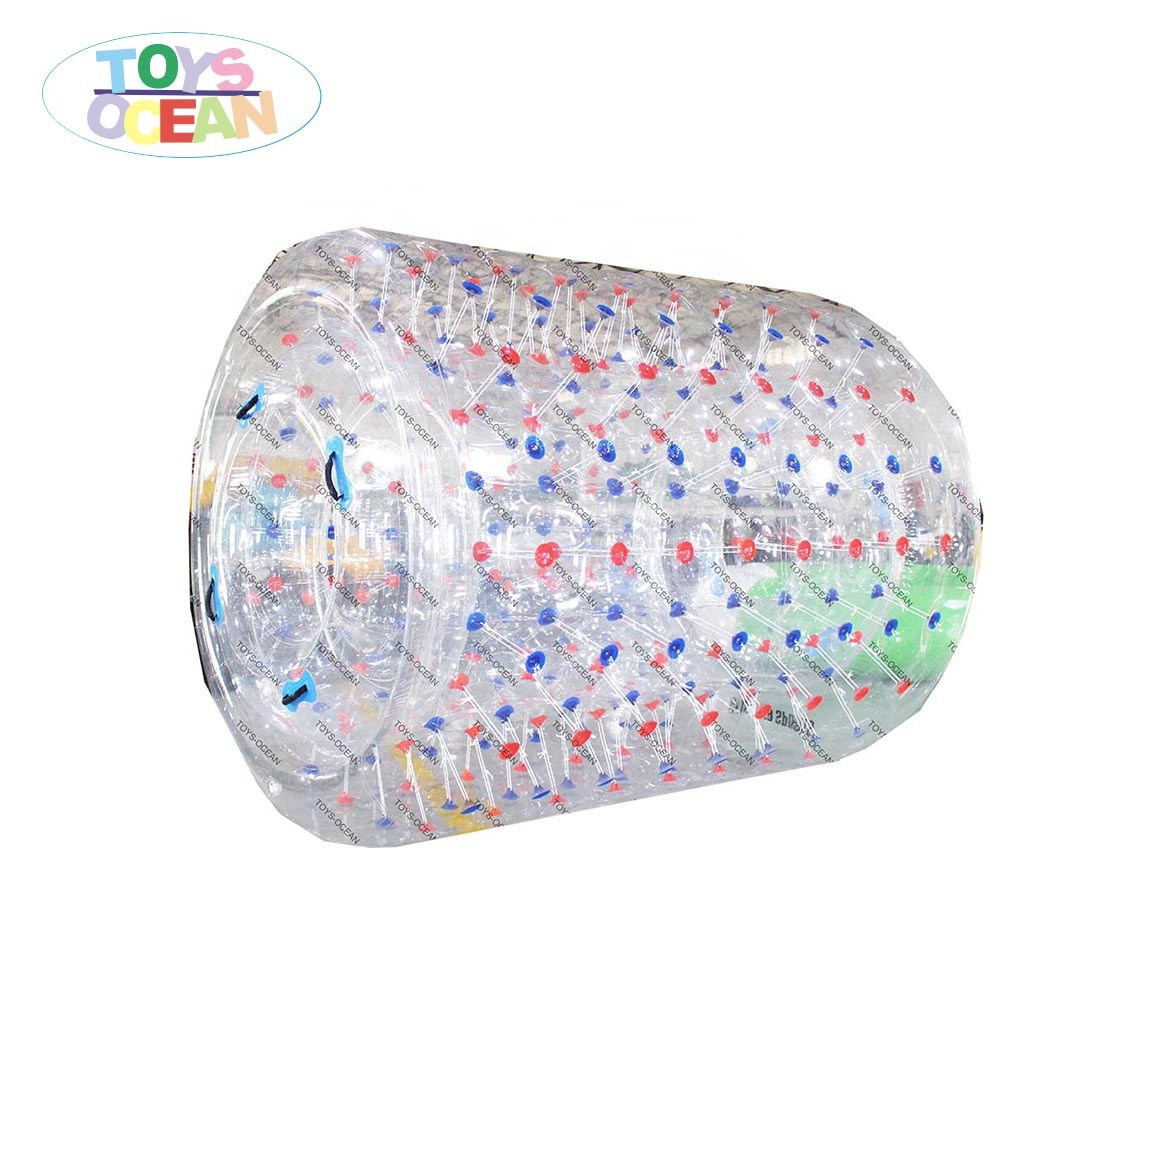 Floating inflatable clear zorb ball Cylinder Roller for water play fun